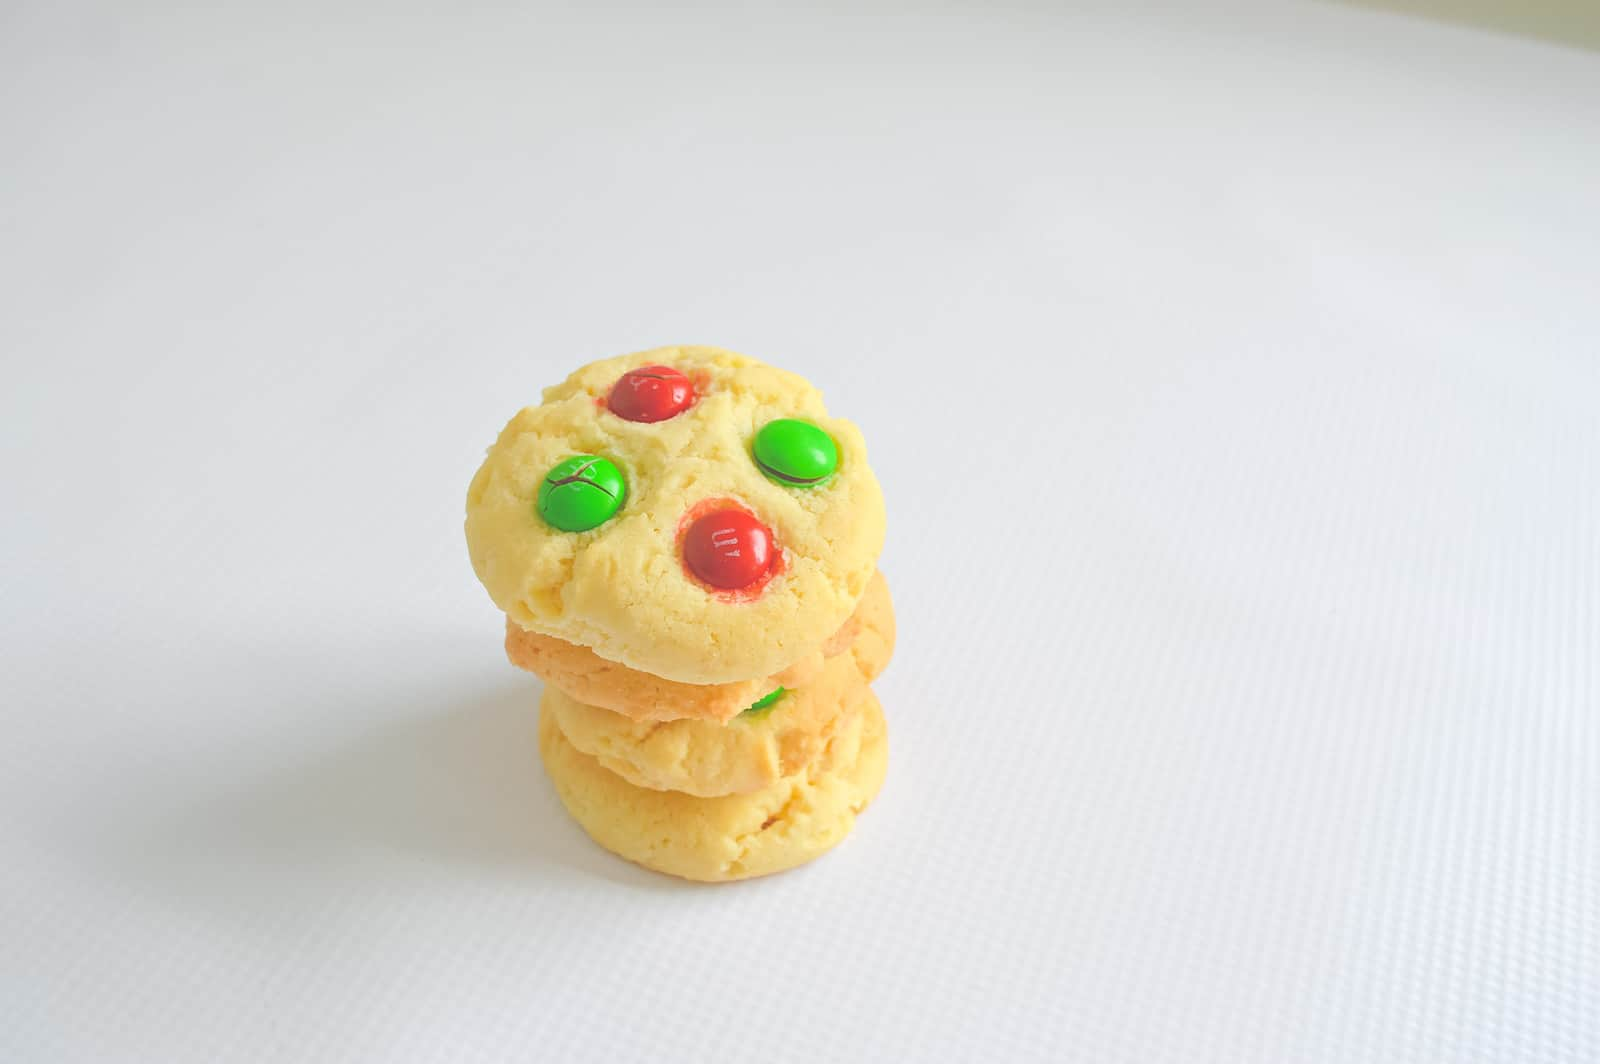 A stack of biscuits decorated with red and green Smarties